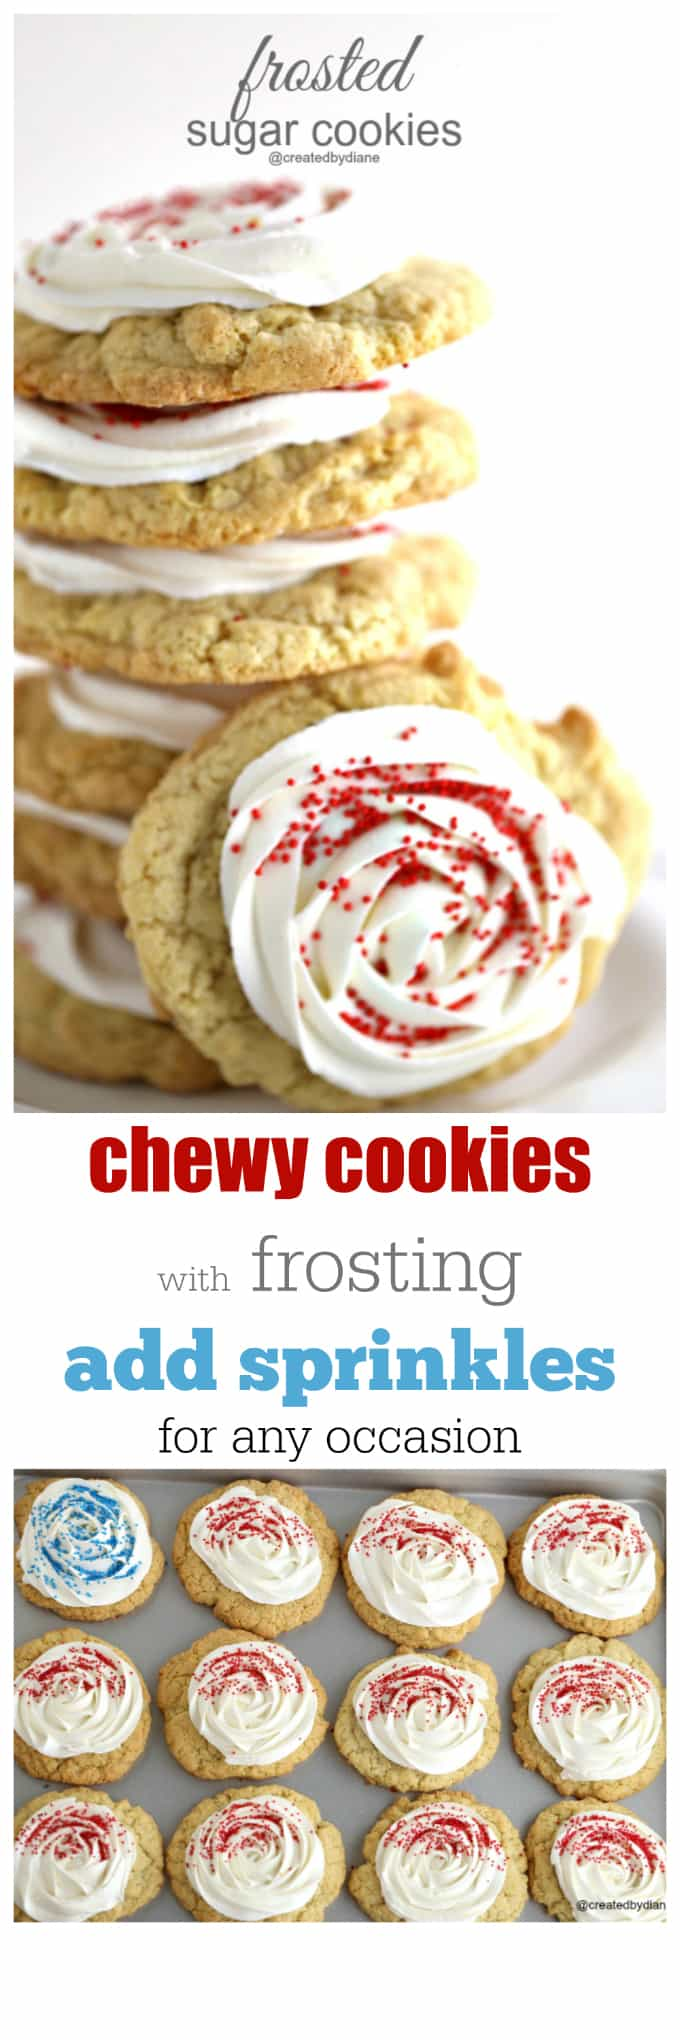 frosted sugar cookies that are chewy and delicious and easy to bake up for any occasion @createdbydiane